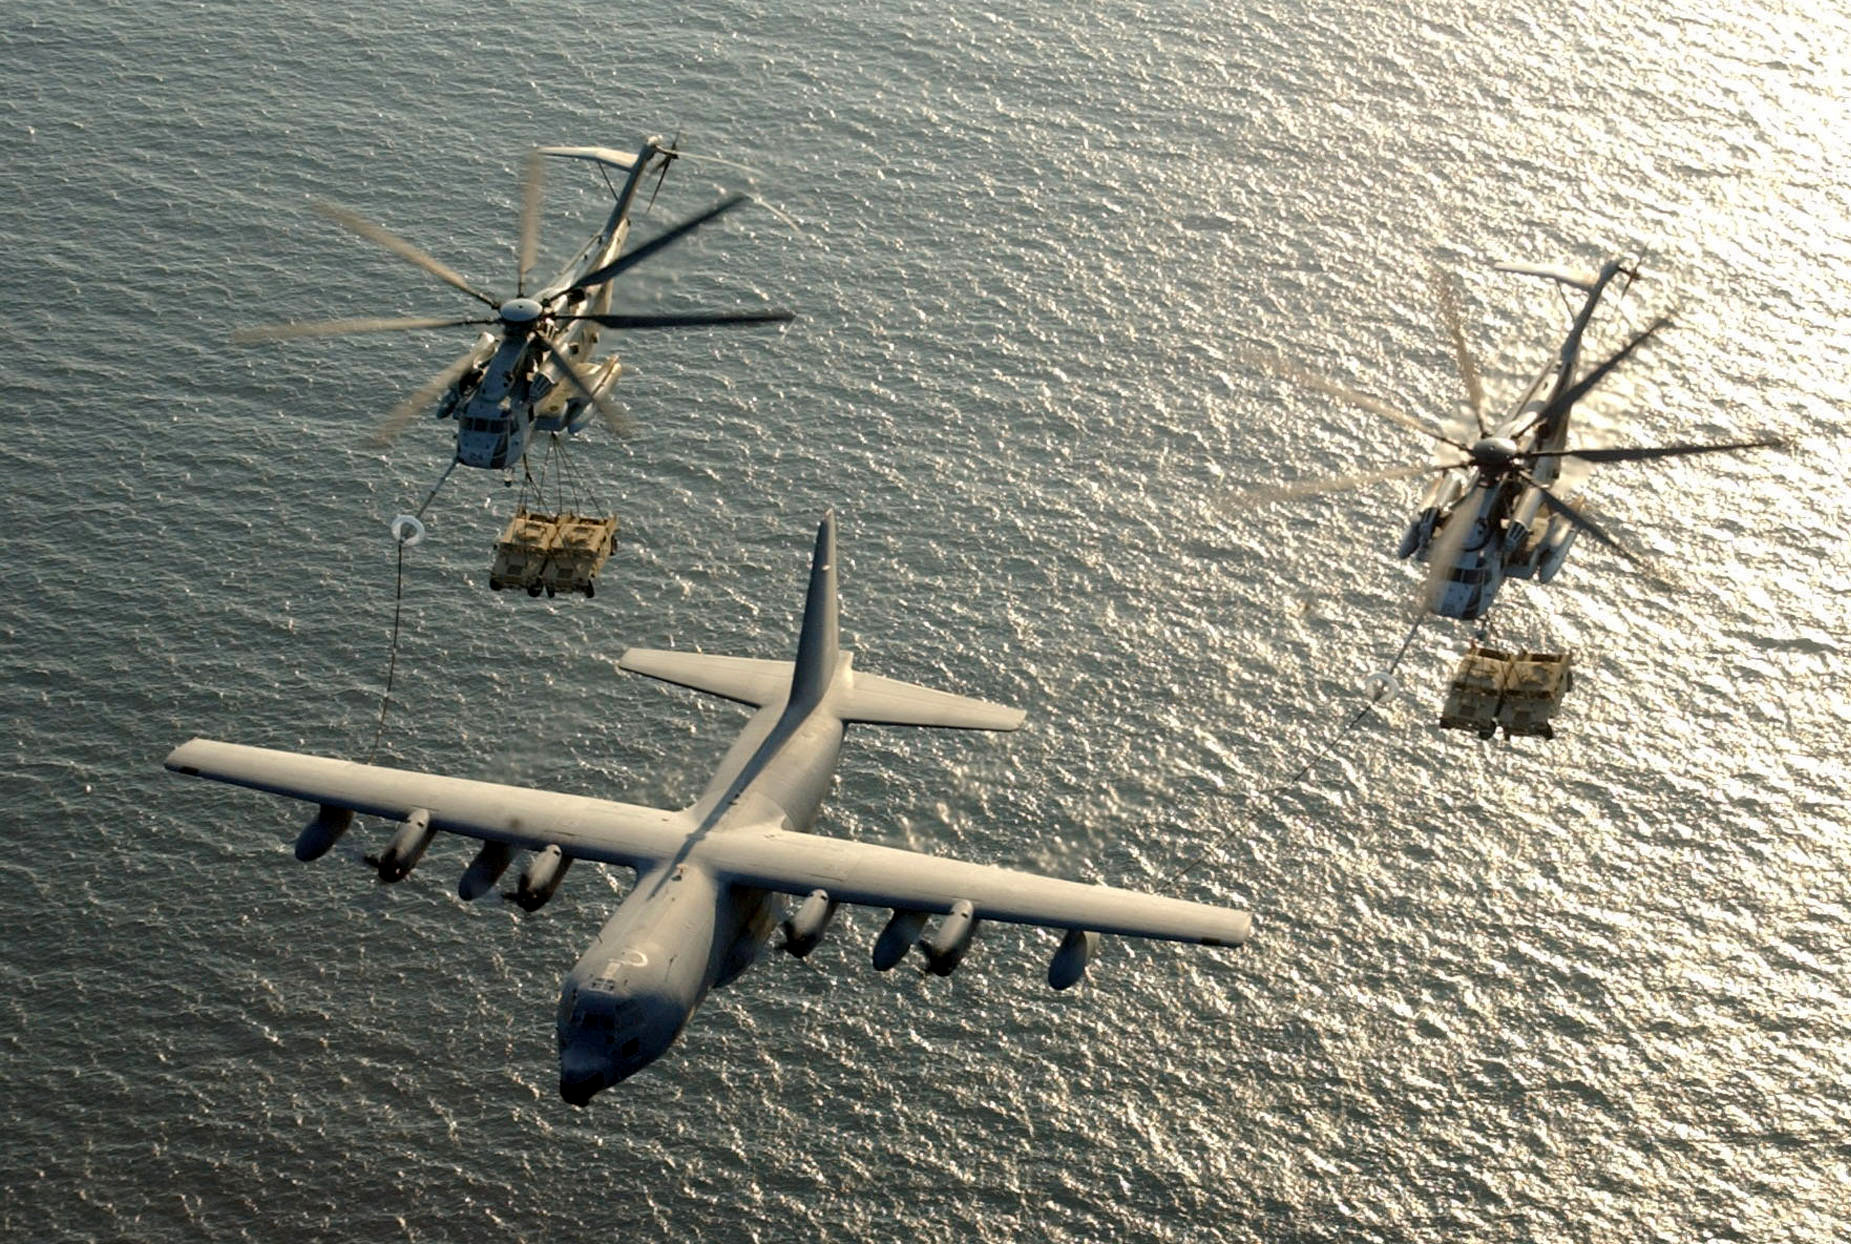 FILE PHOTO: Two U.S. Marine Corps CH-53E Super Stallion helicopters receive fuel from a KC-130 Hercules over the Gulf of Aden January 1, 2003. U.S. Marine Corps/Cpl. Paula M. Fitzgerald/Handout/File Photo via REUTERS